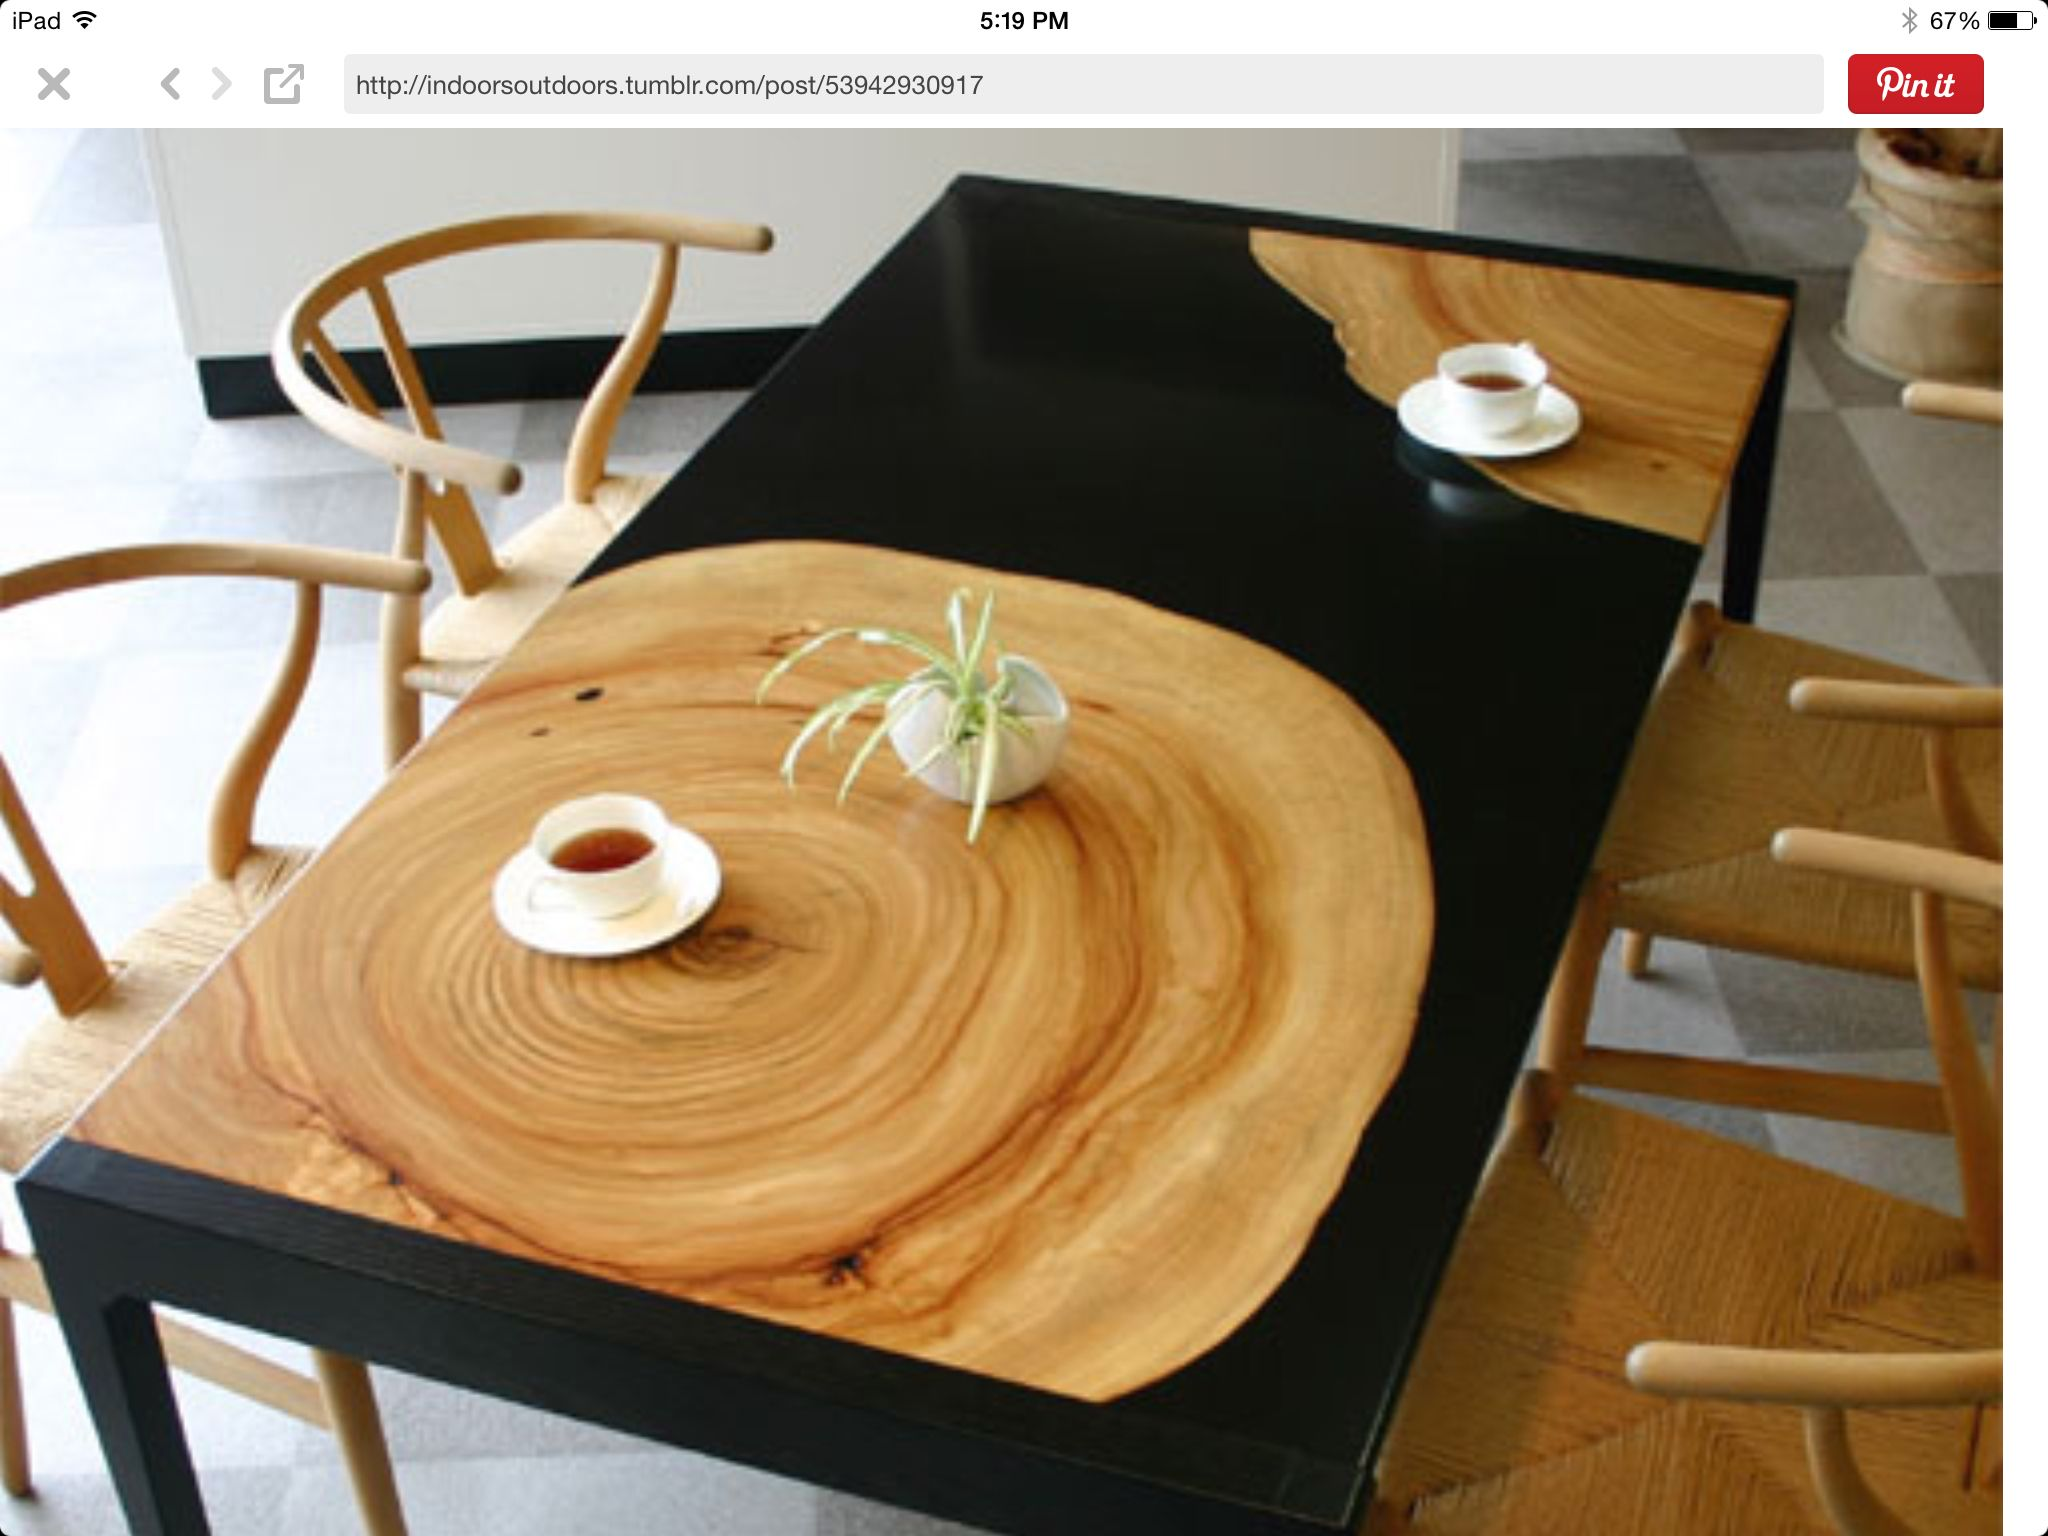 Wood Tree Trunk Slice Table     Modern Bohemian Boho Interior Design /  Vintage And Mod Mix With Nature, Wood Tones And Bright Accent Colors ...